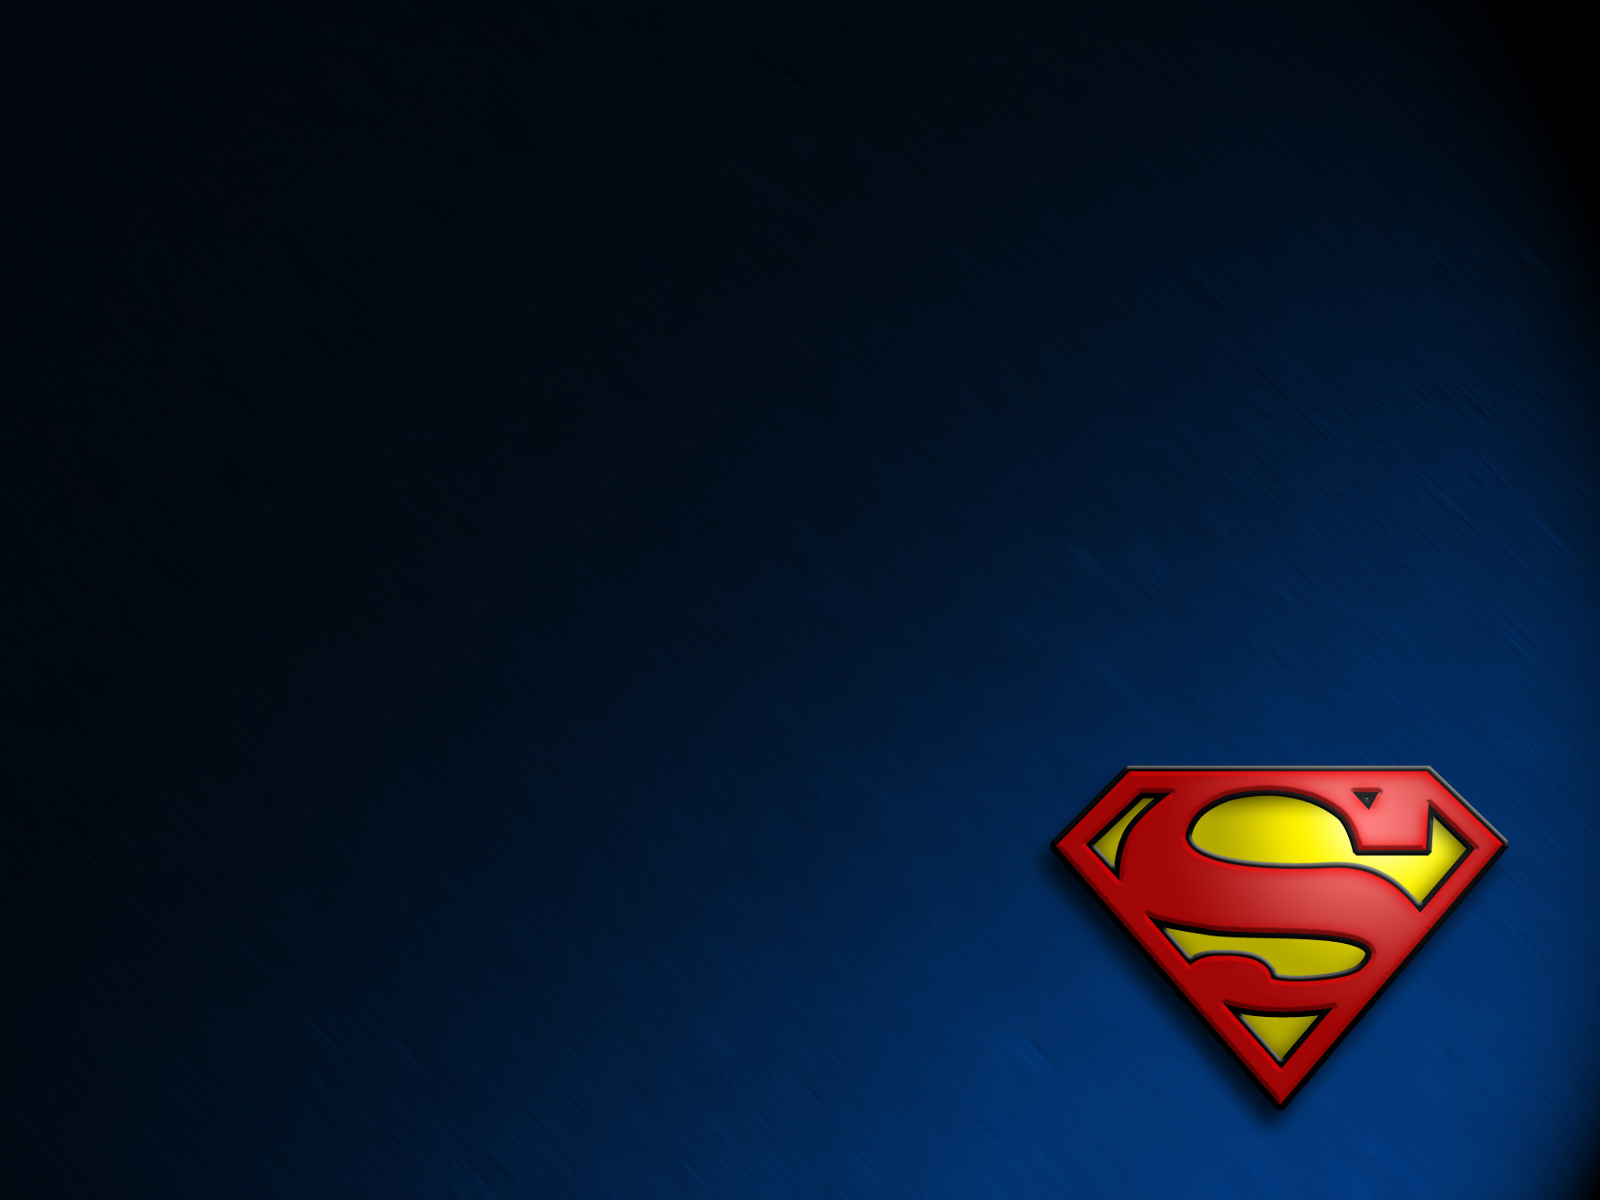 free superman logo wallpaper 34242